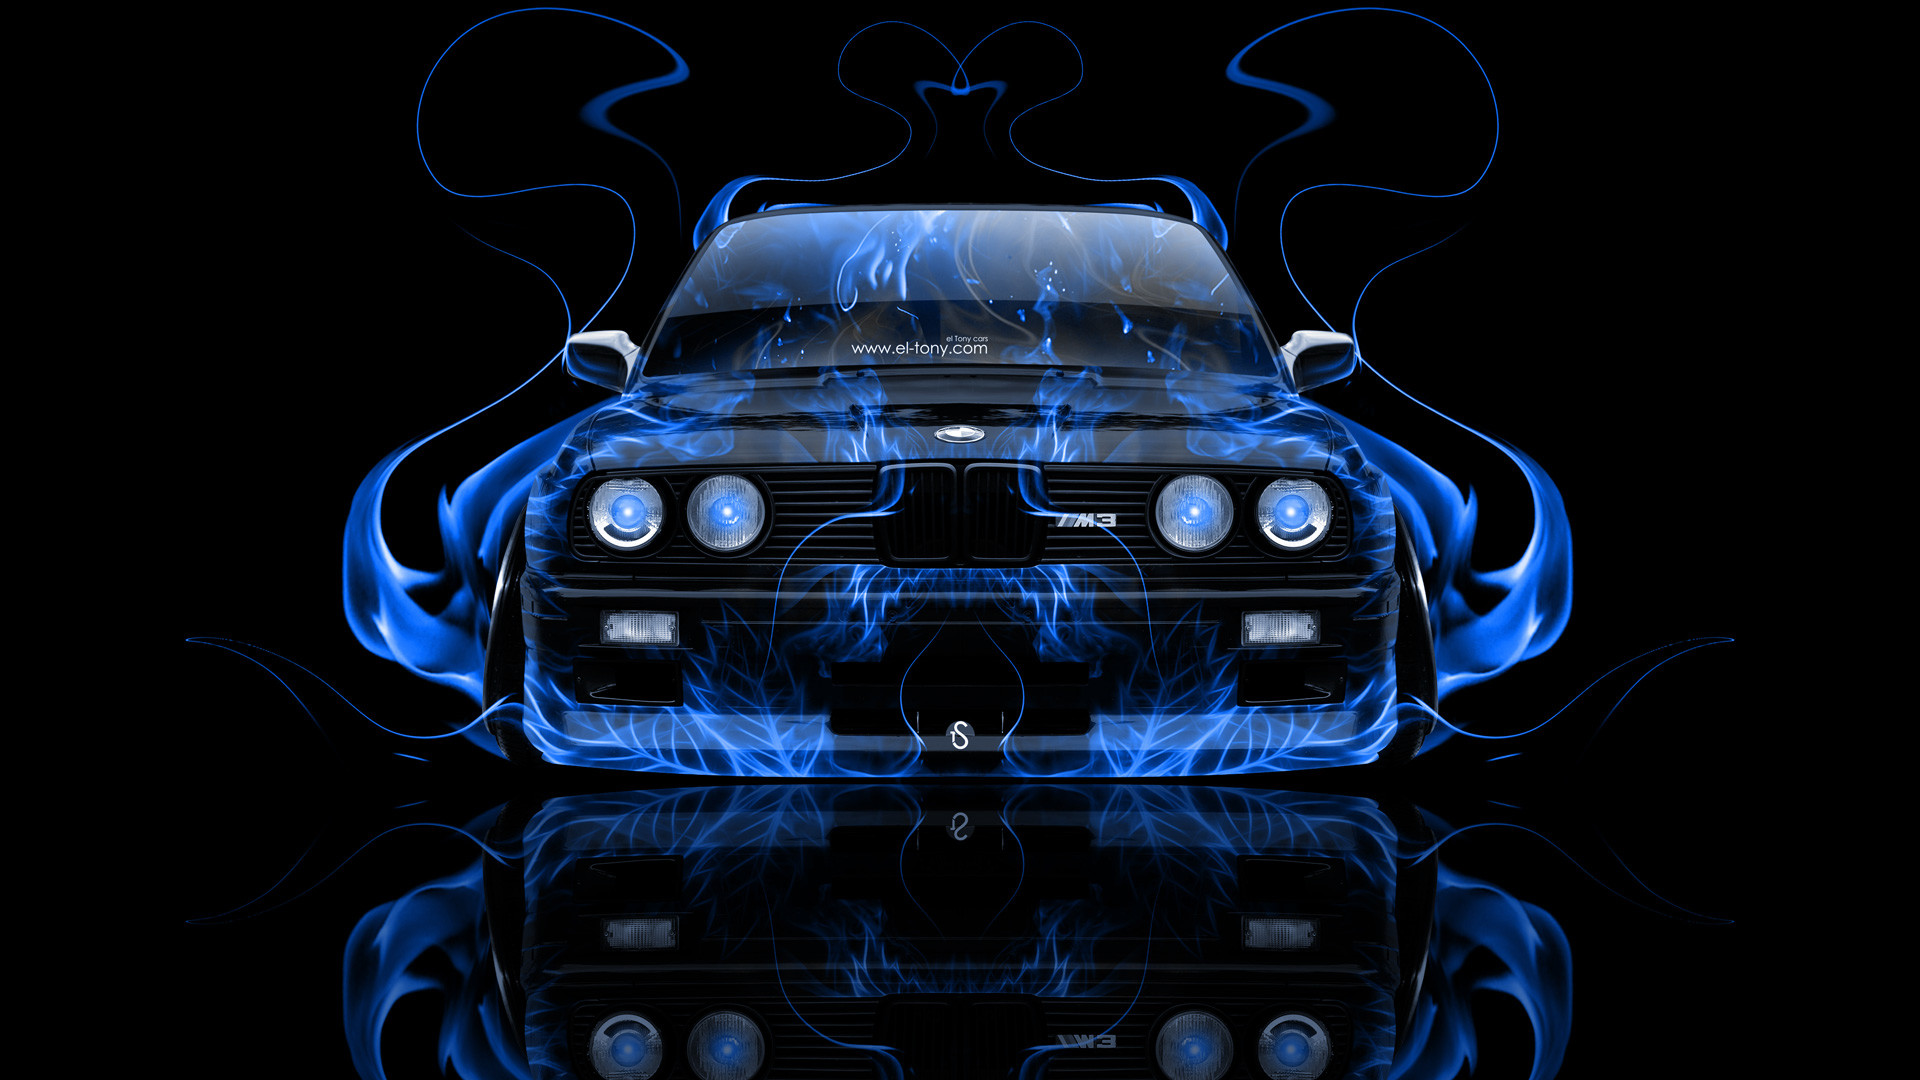 BMW-M3-E30-Front-Blue-Fire-Abstract-Car-2014-HD-Wallpapers-design-by .